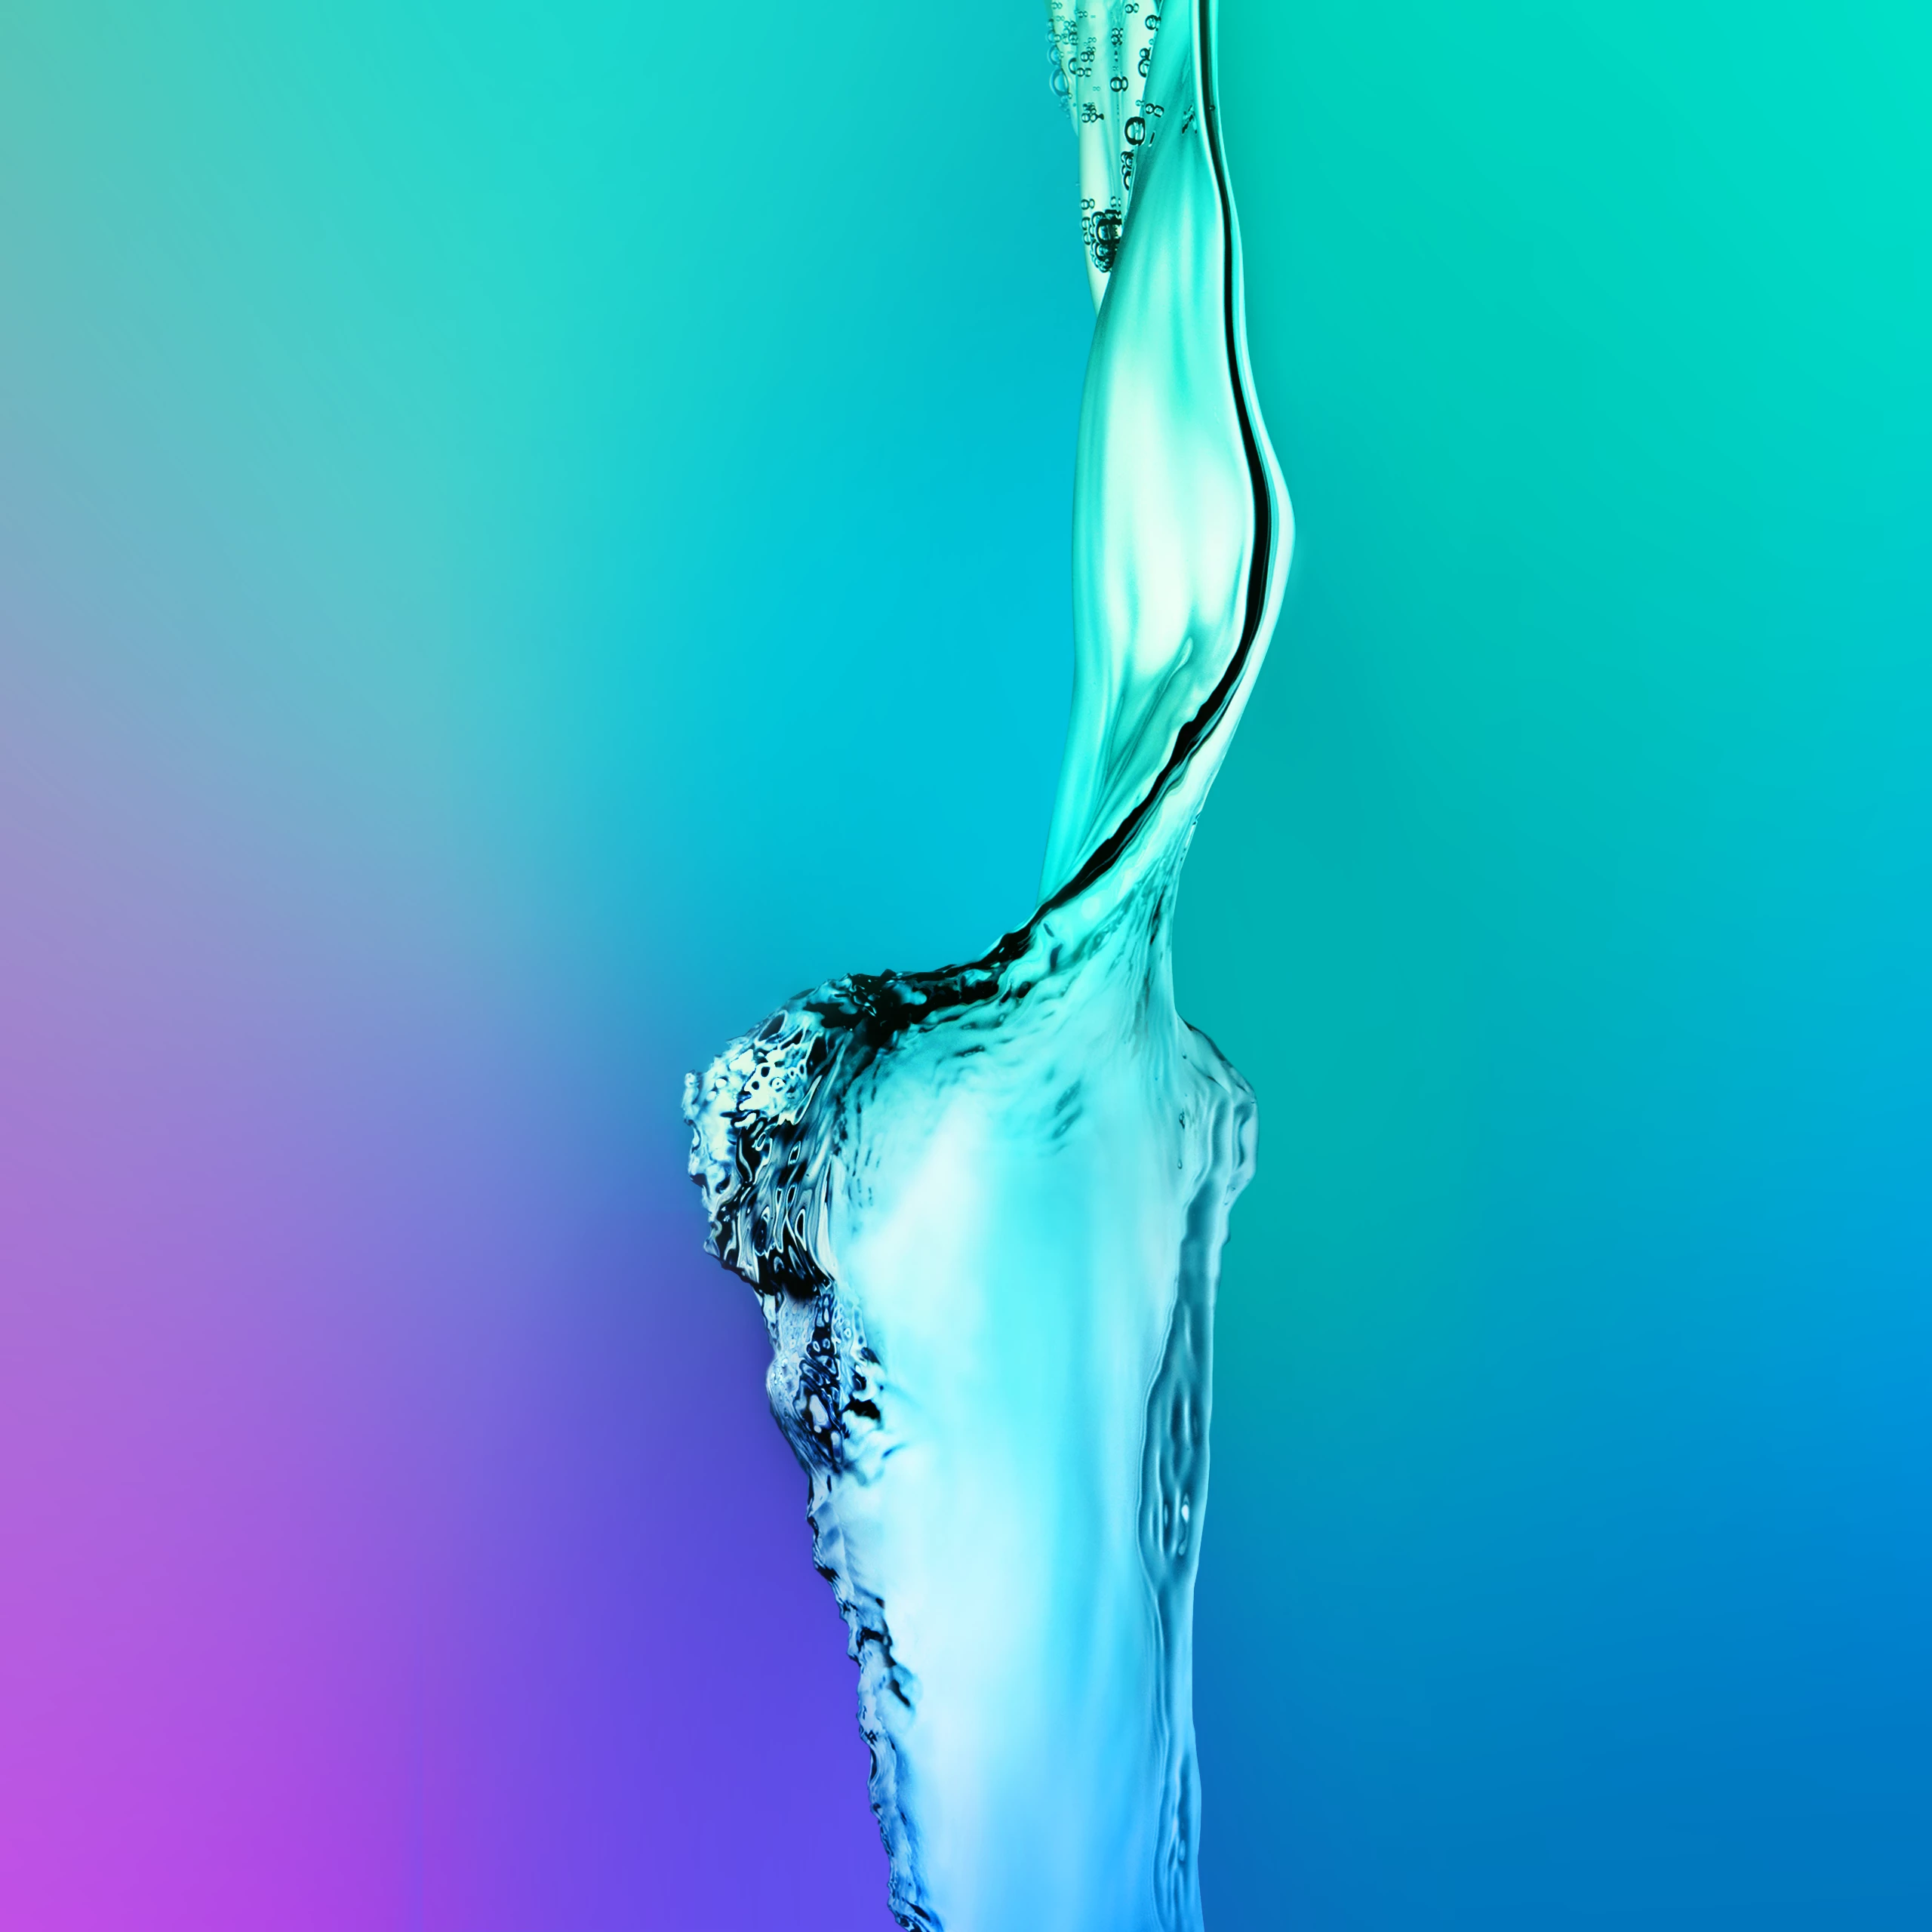 Samsung Galaxy Note 5 And Galaxy Edge Stock Wallpapers